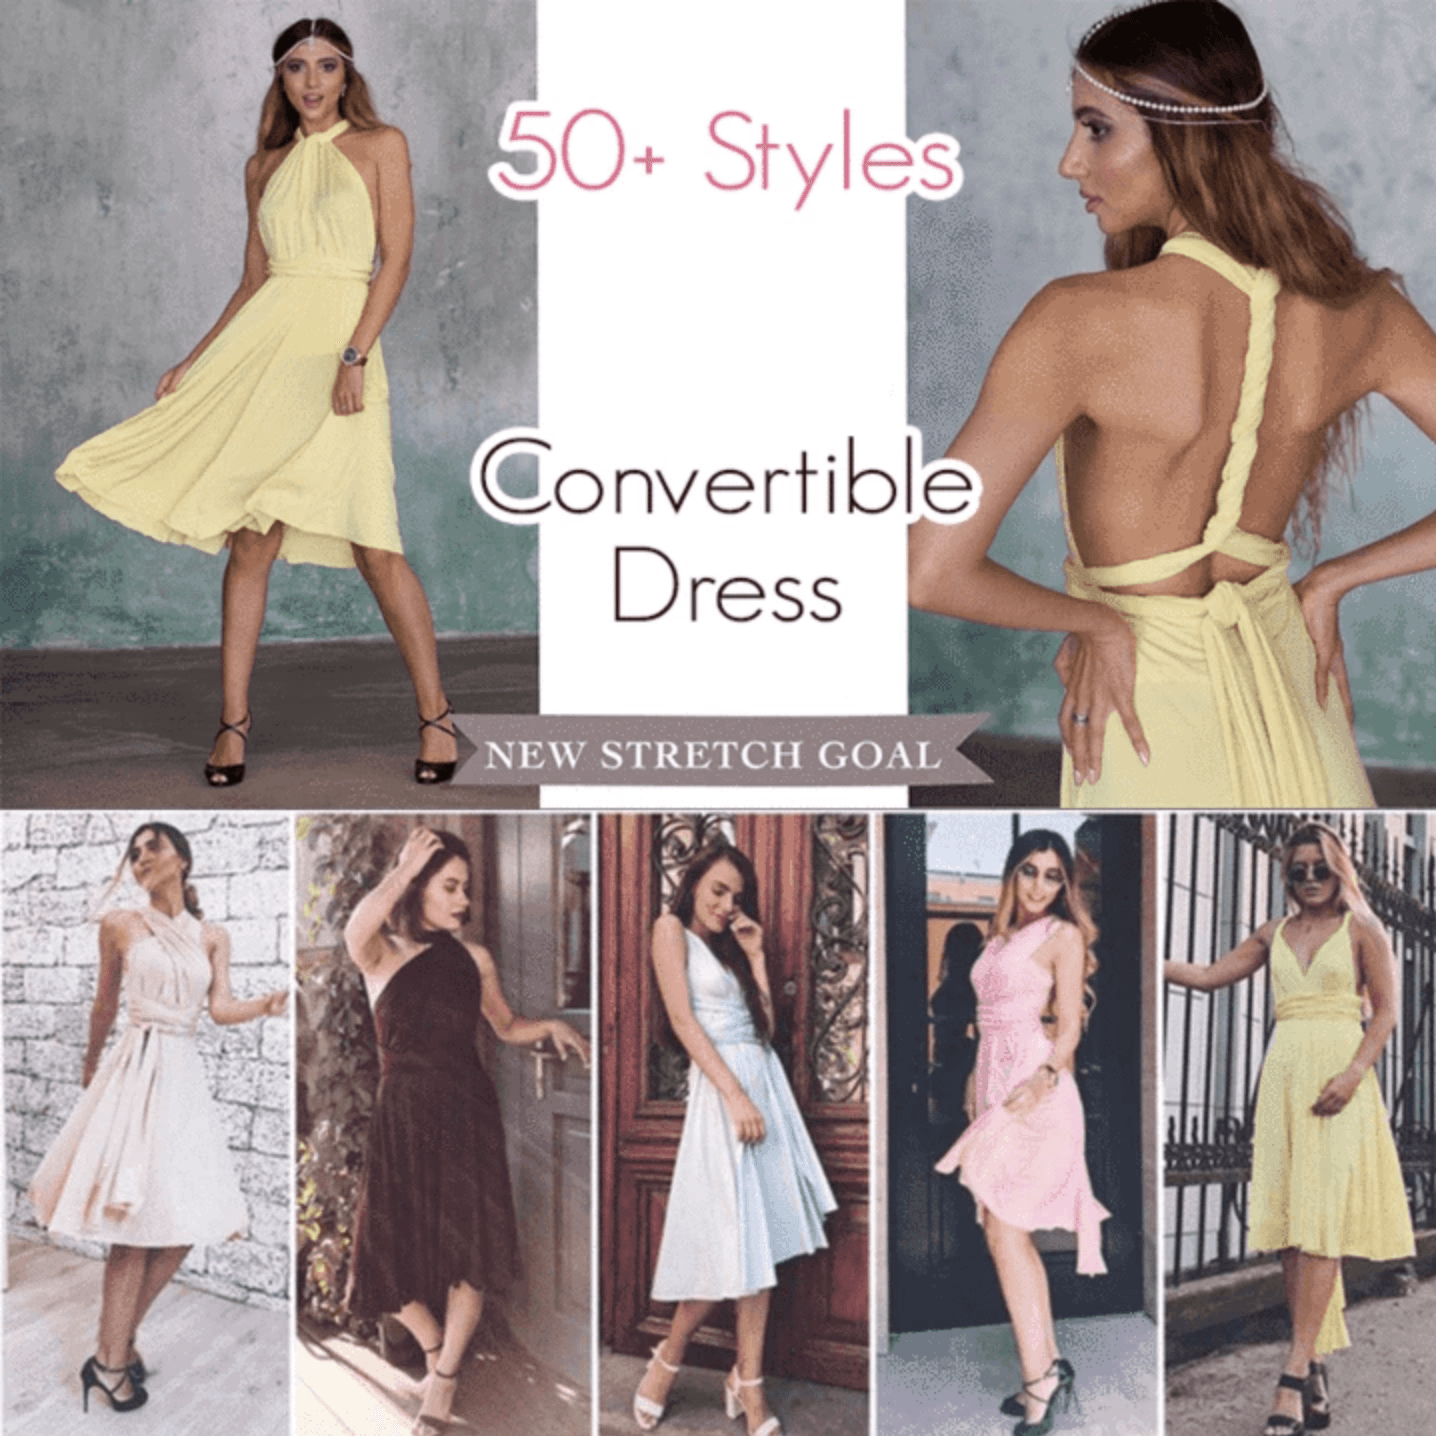 50+ Styles Chic Convertible Dress